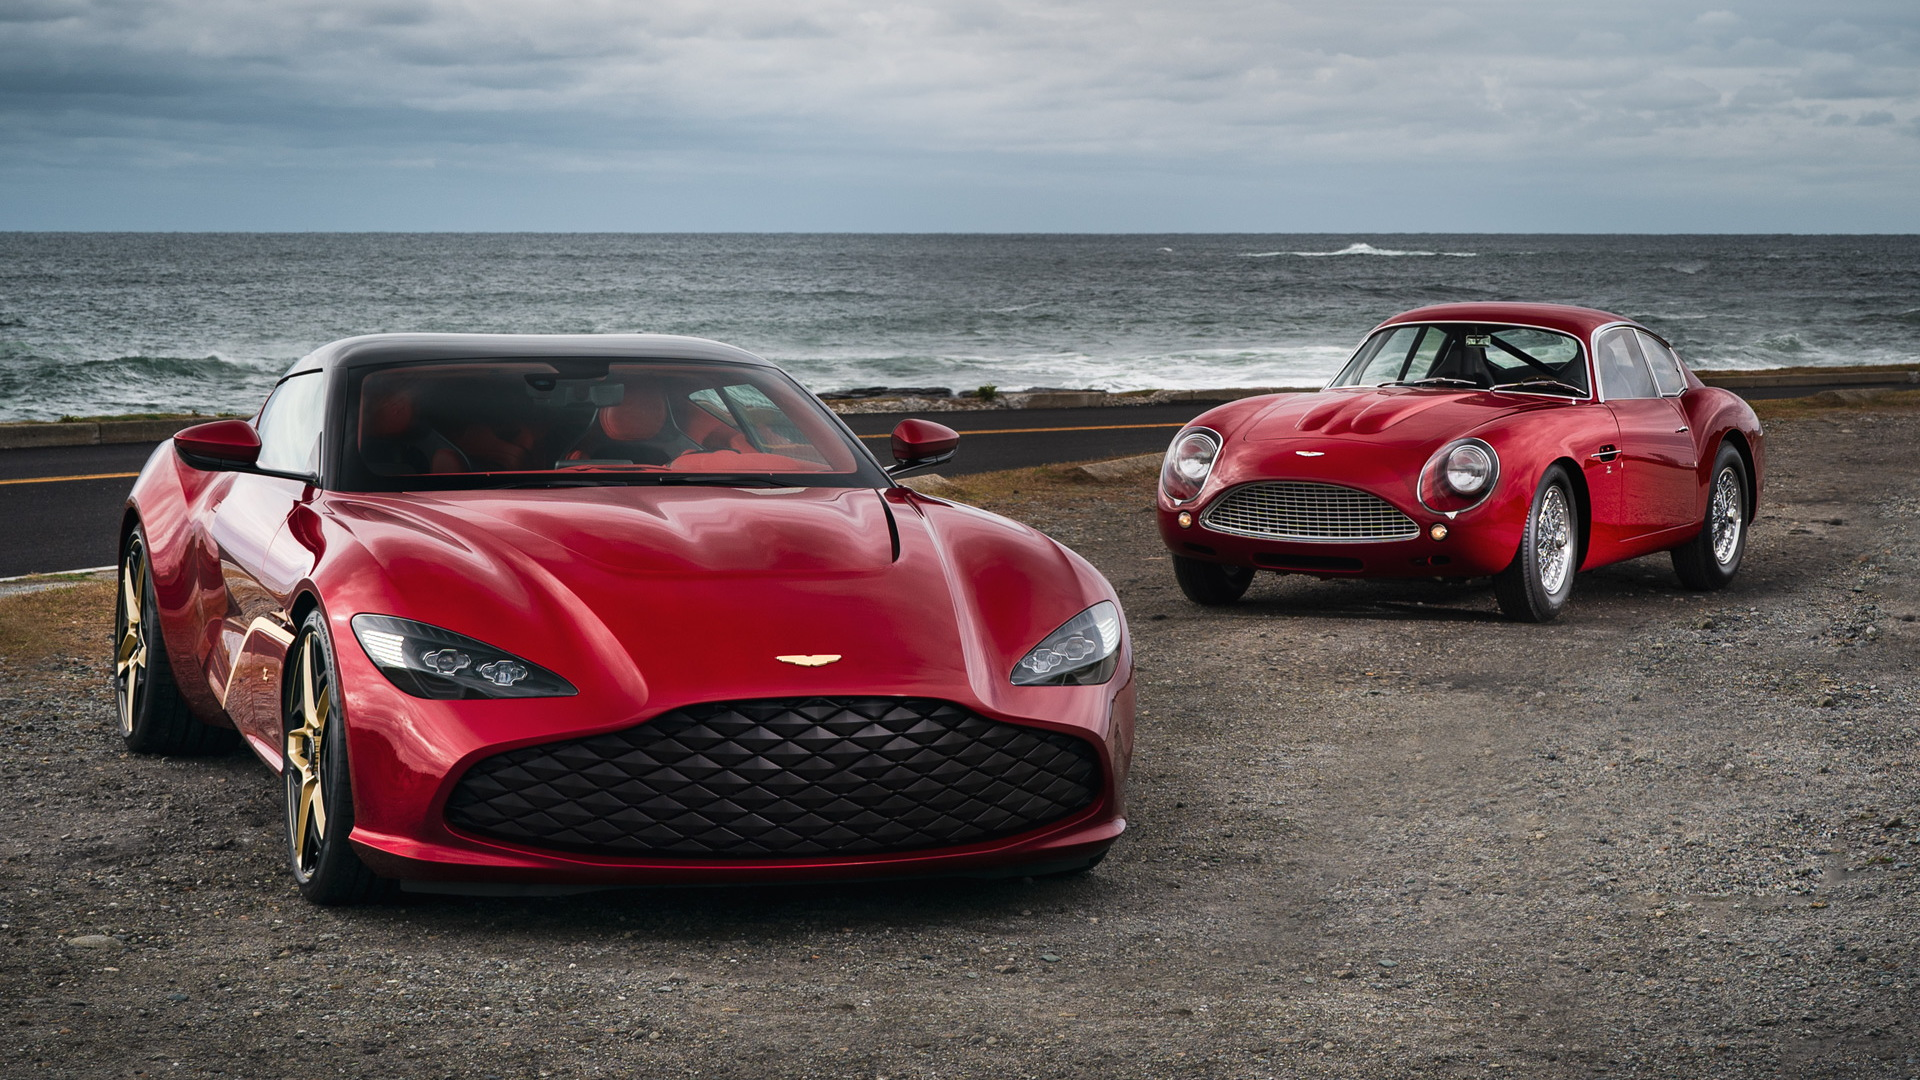 Aston Martin DBS GT Zagato and DB4 GT Zagato continuation car